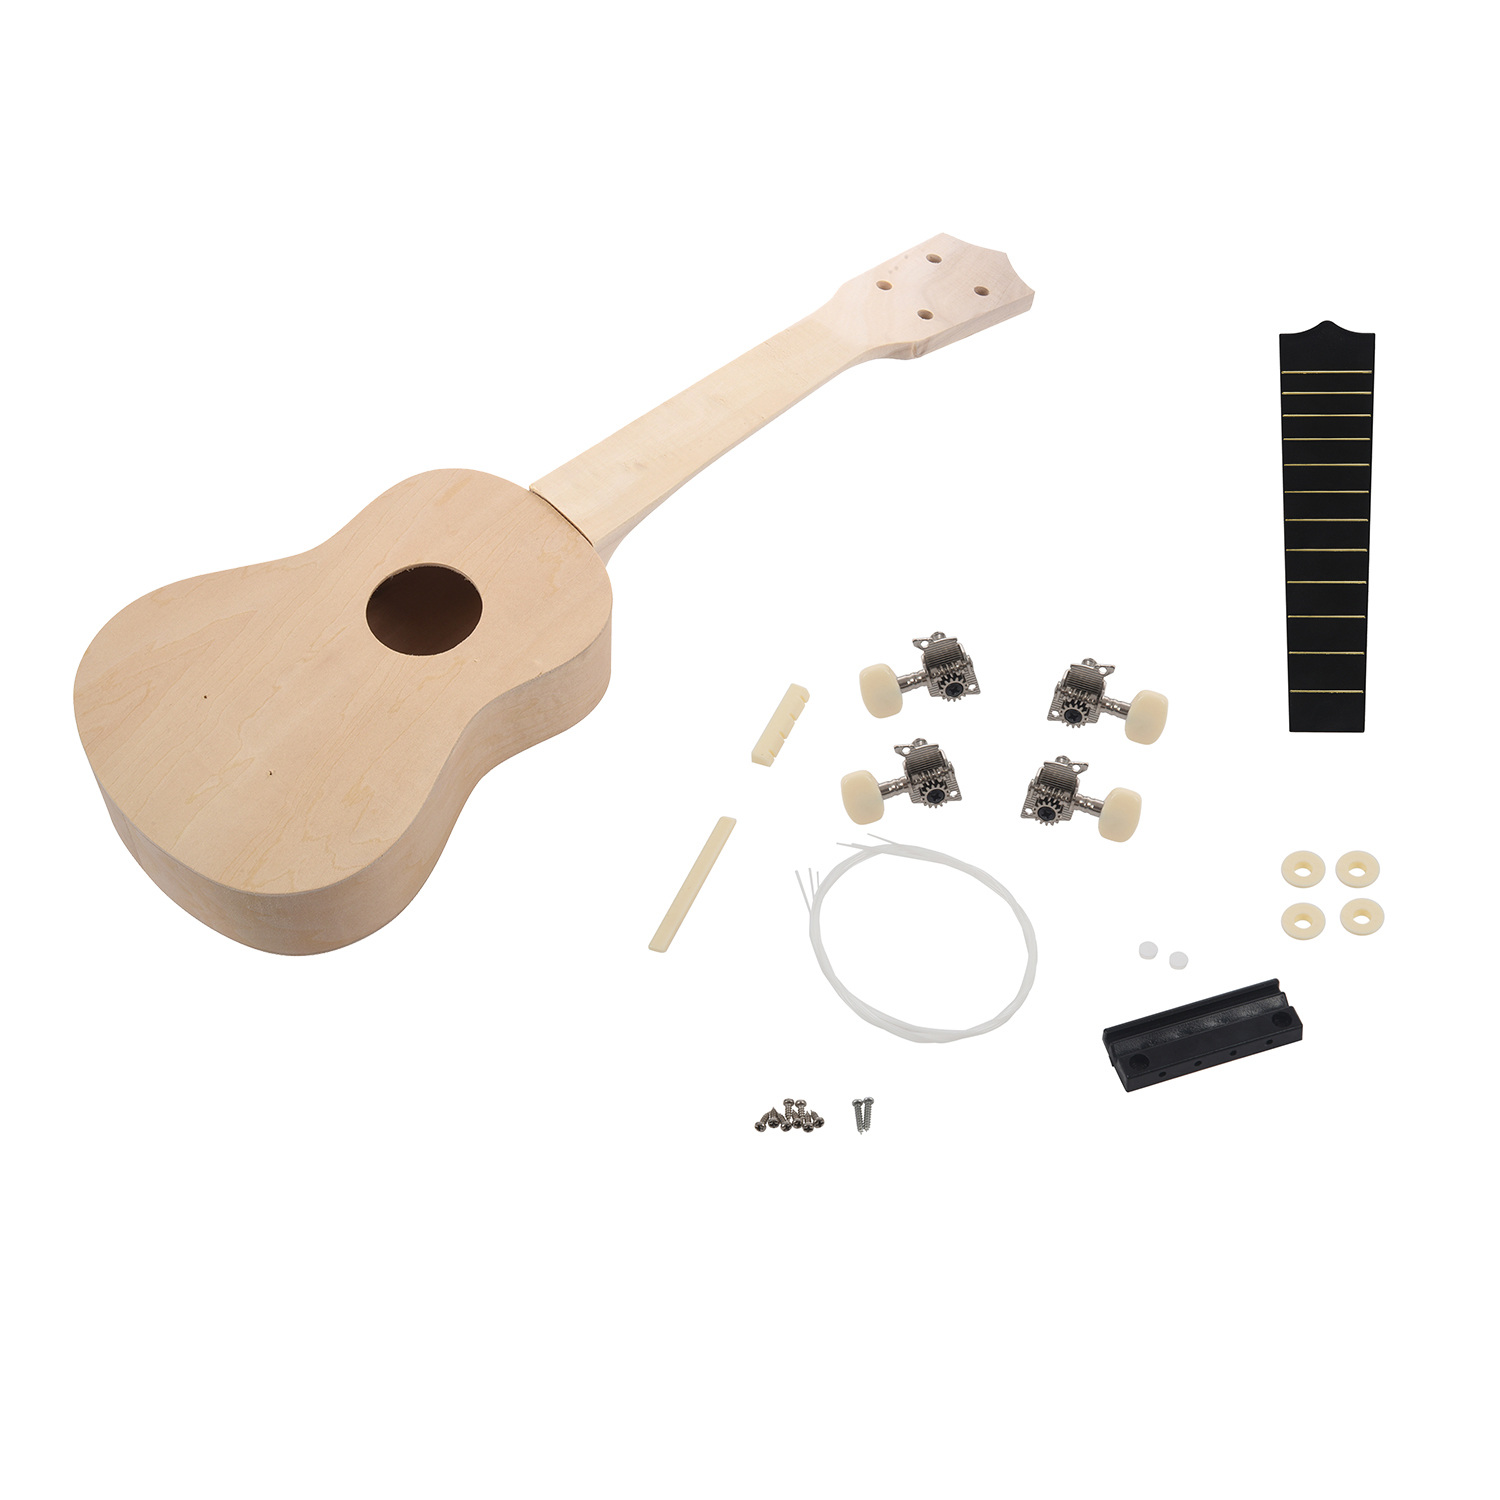 21inch White Wooden Ukulele Soprano Hawaiian Guitar Uke Kit Musical Instrument DIY21inch White Wooden Ukulele Soprano Hawaiian Guitar Uke Kit Musical Instrument DIY